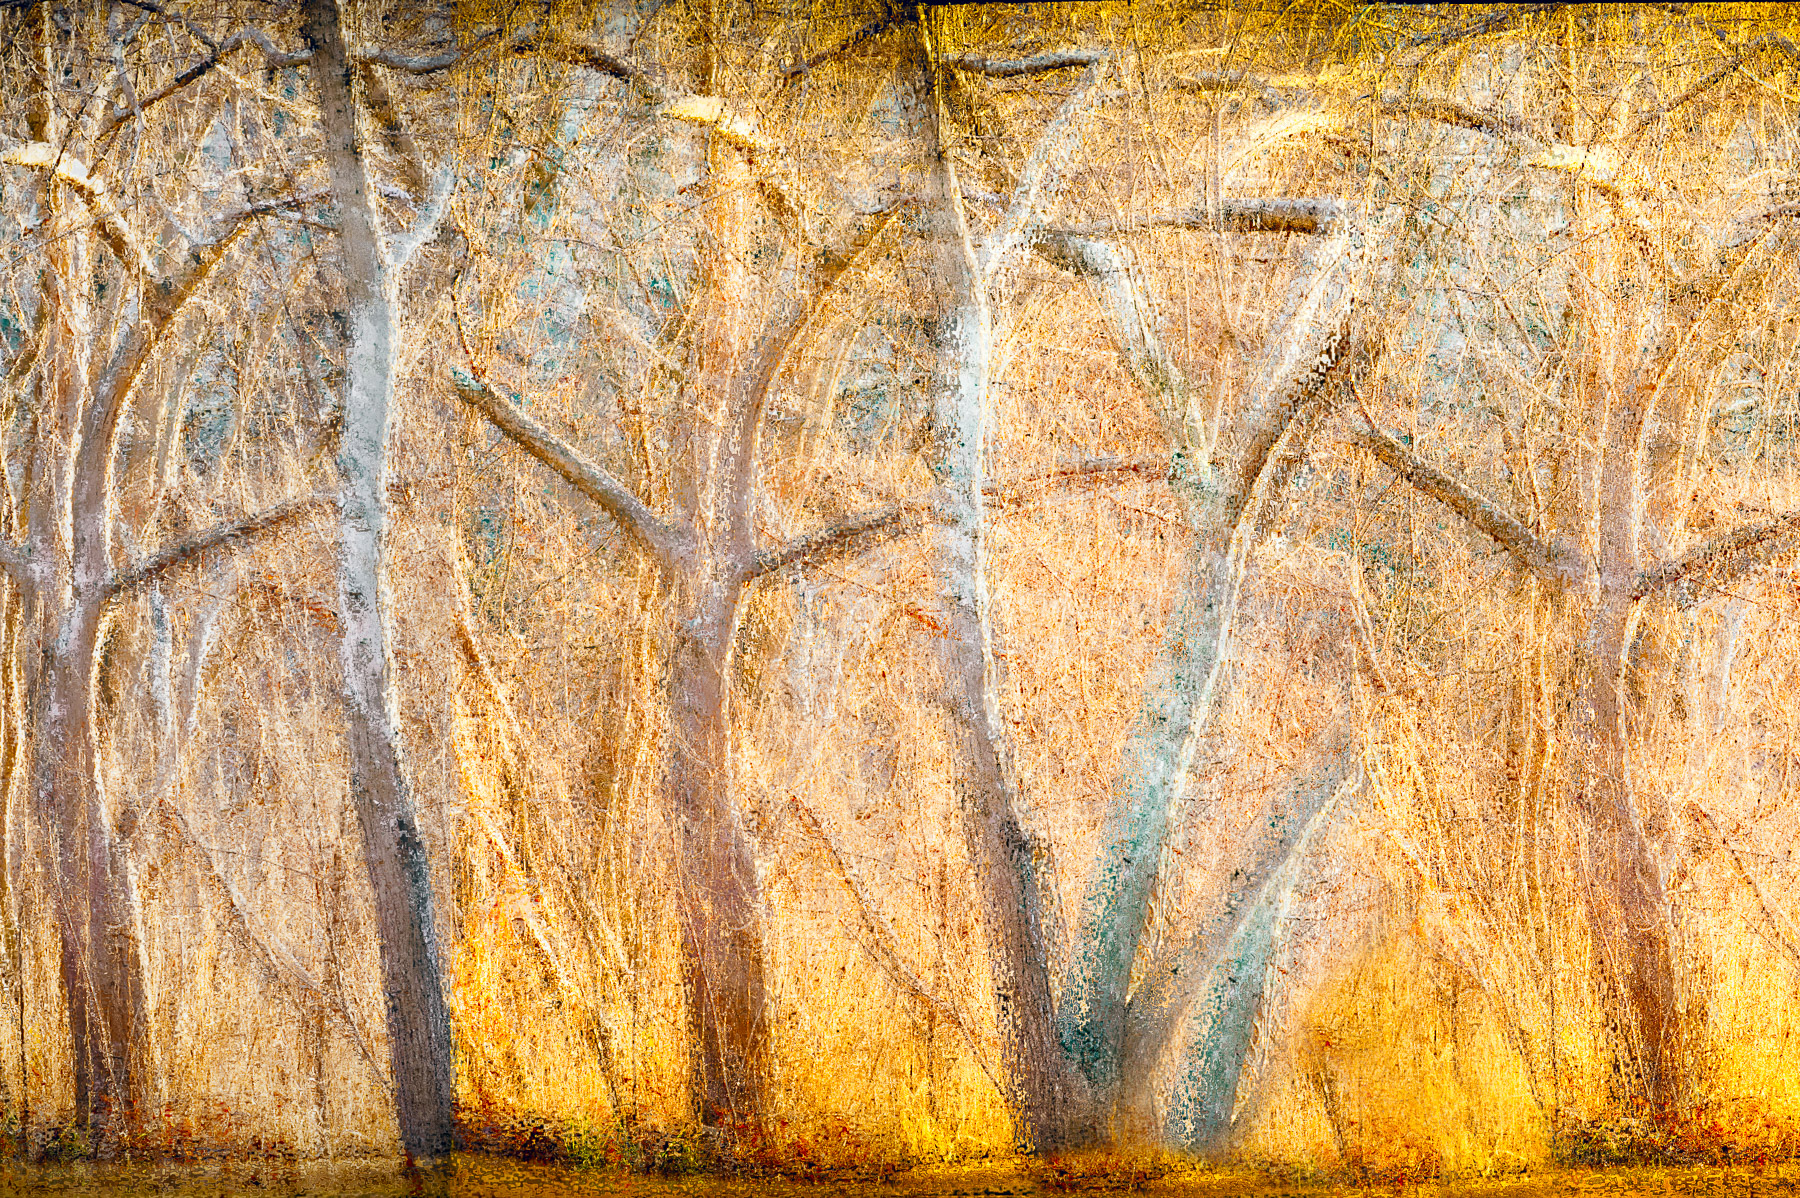 Linda DeStefano Brown,  Shimmering LIght,  Digital photograph, 24x18